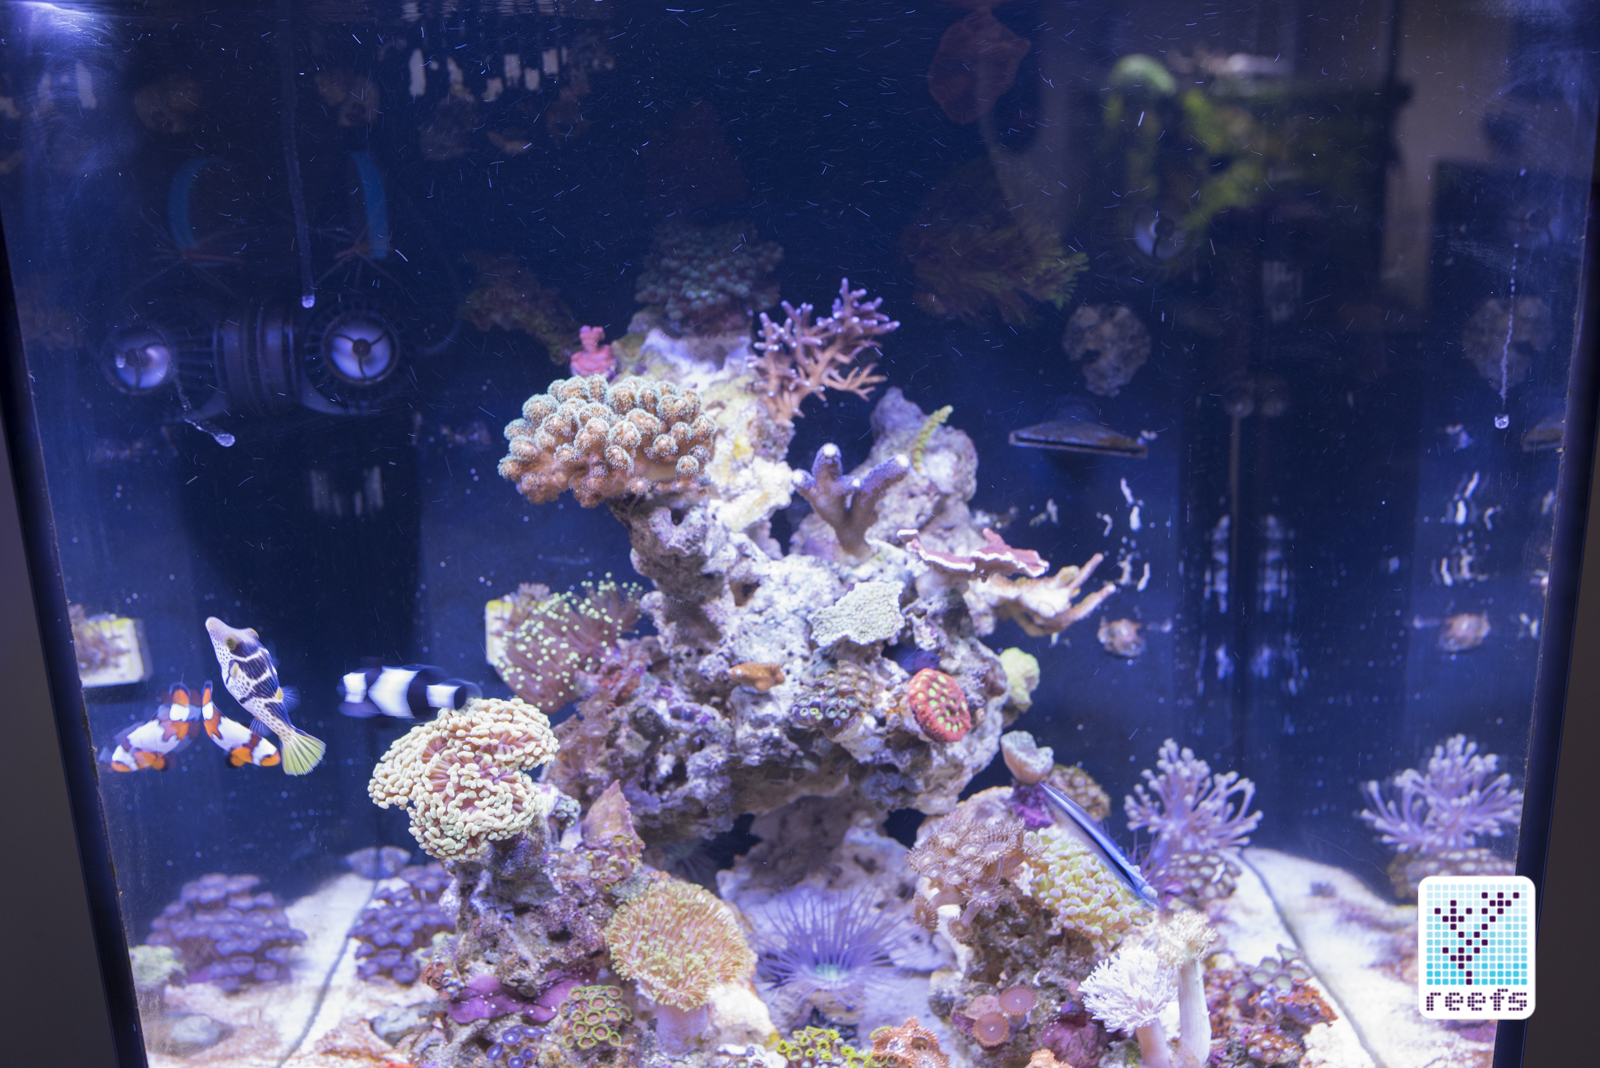 Fluval marine reef led 20 review reefs fluval over authors aquarium aloadofball Image collections